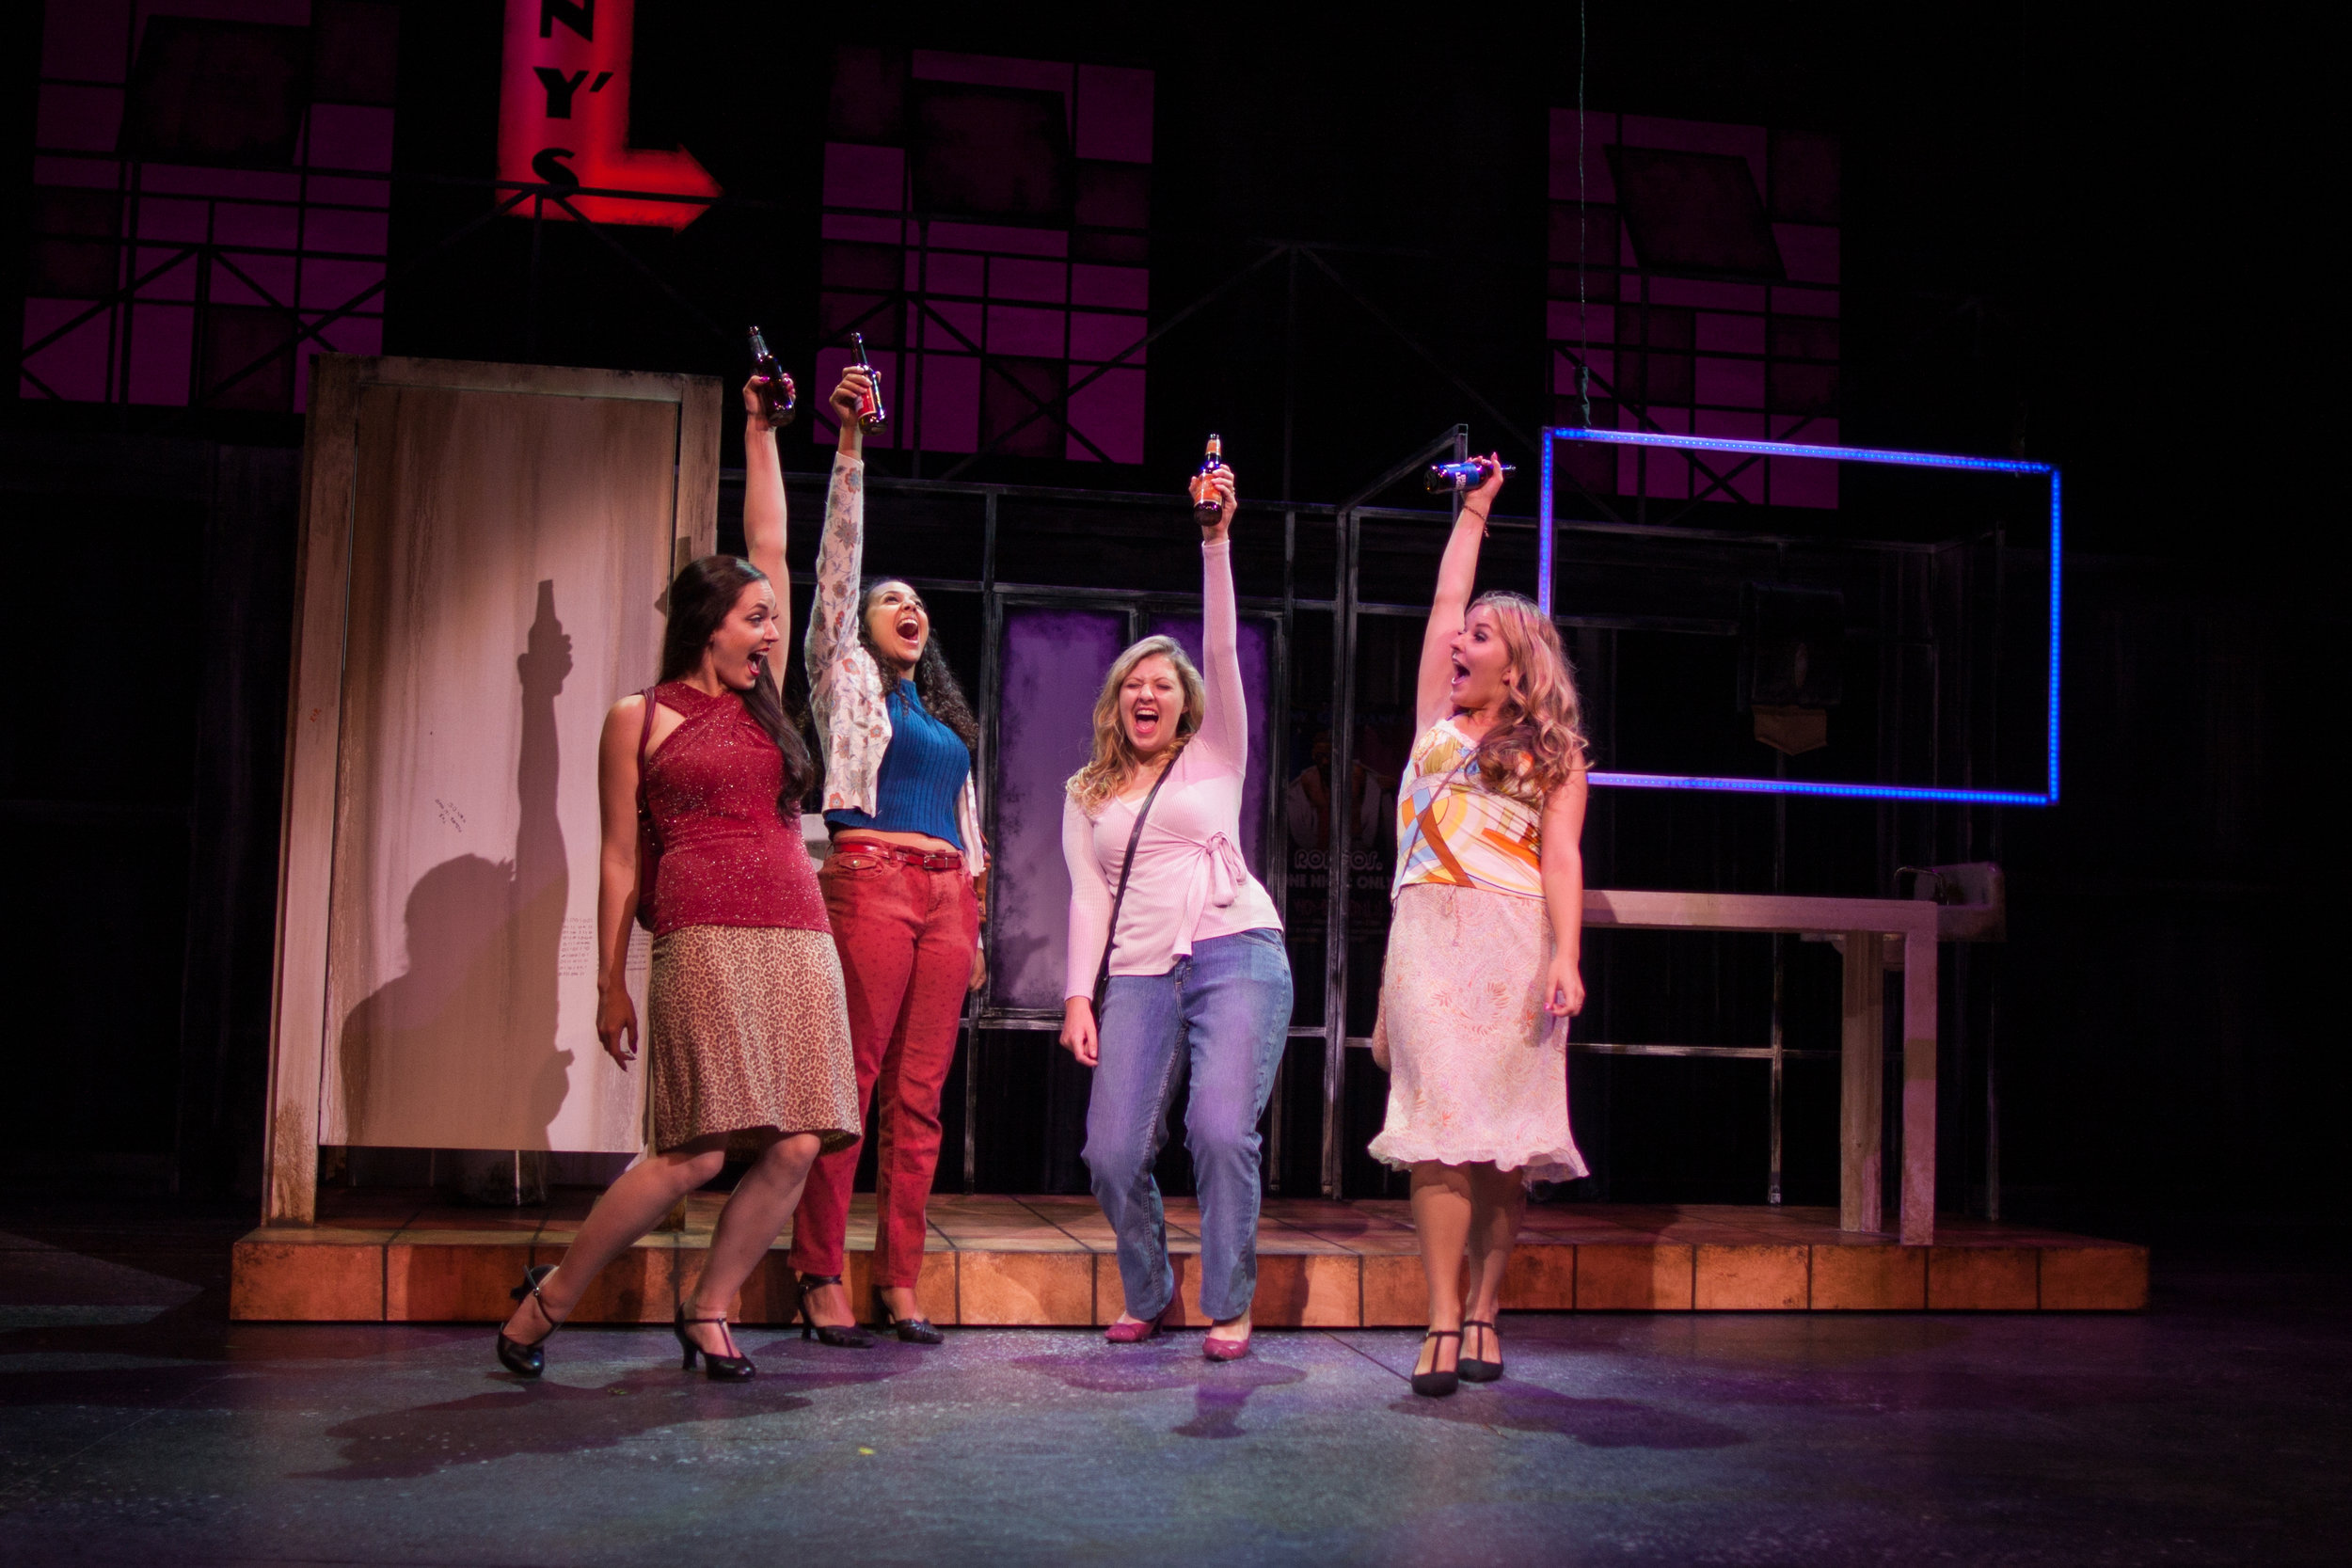 """A Woman's World""  Estelle (Megan Mattix), Joanie (Kaitlyn Taylor), Georgie (Audrey Pennington), & Susan (Emmy Farese)  Photo courtesy of Stephen M. Woo."